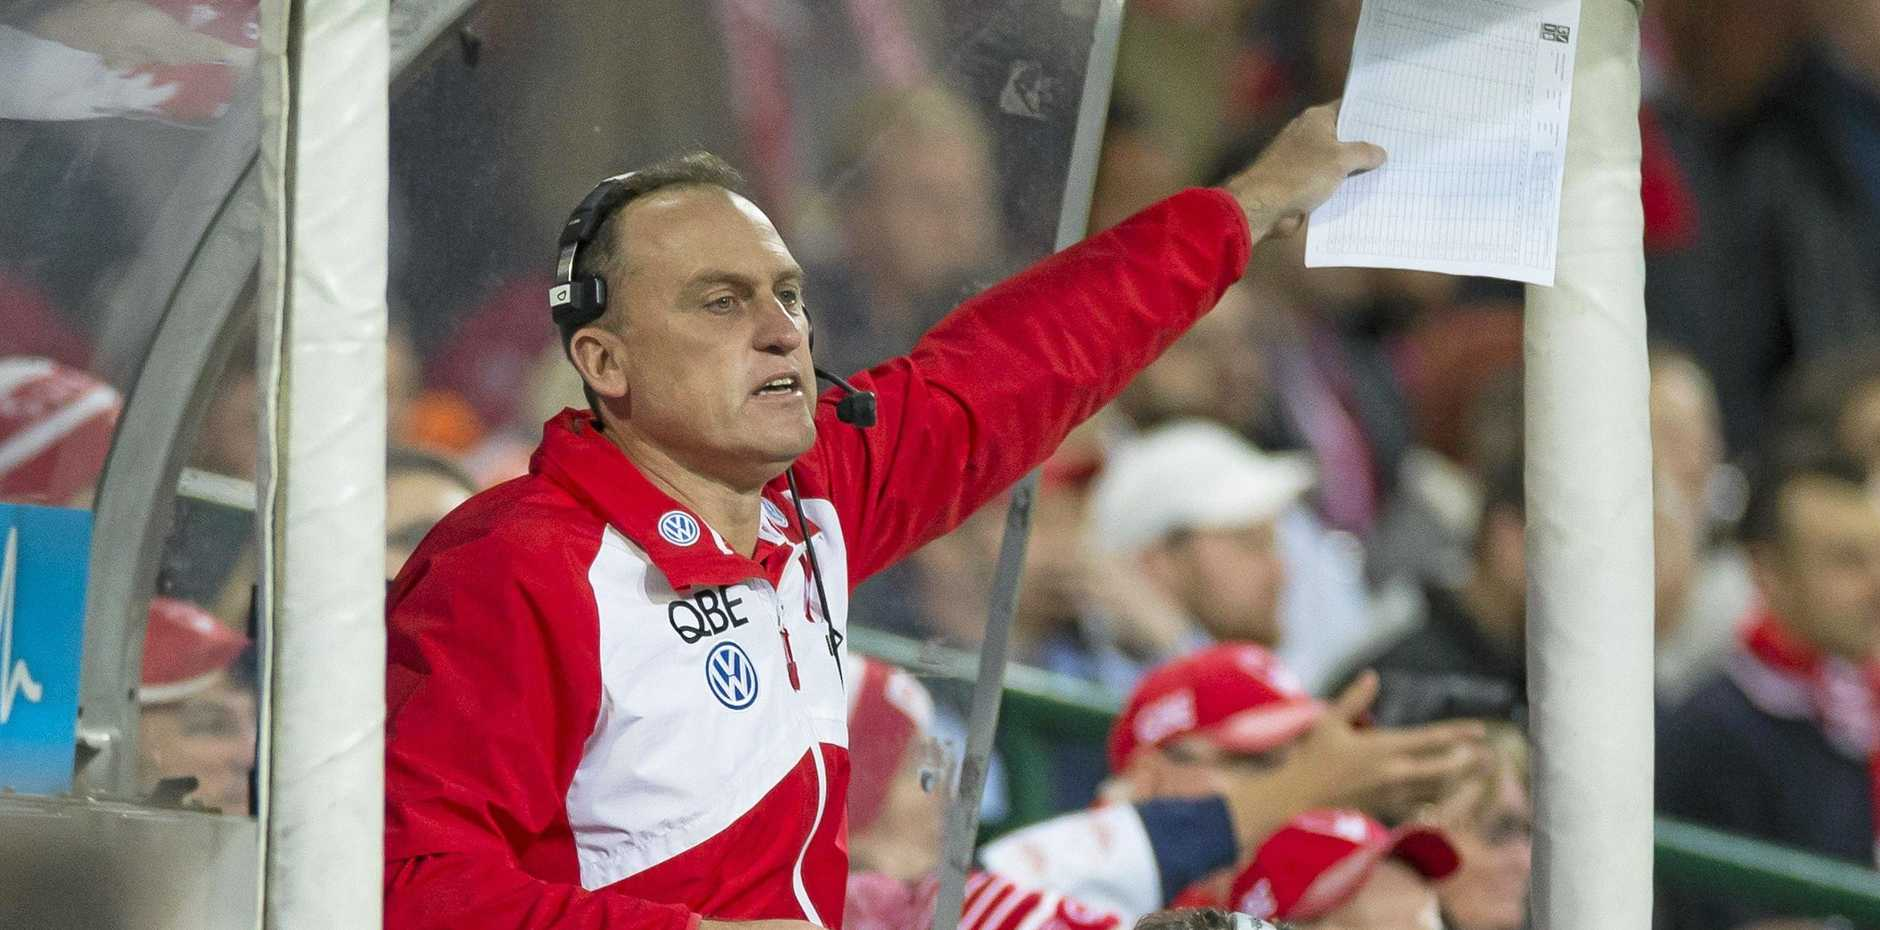 Sydney premiership coach and former North Melbourne champion John Longmire is in demand. Picture: Craig Golding/AAP